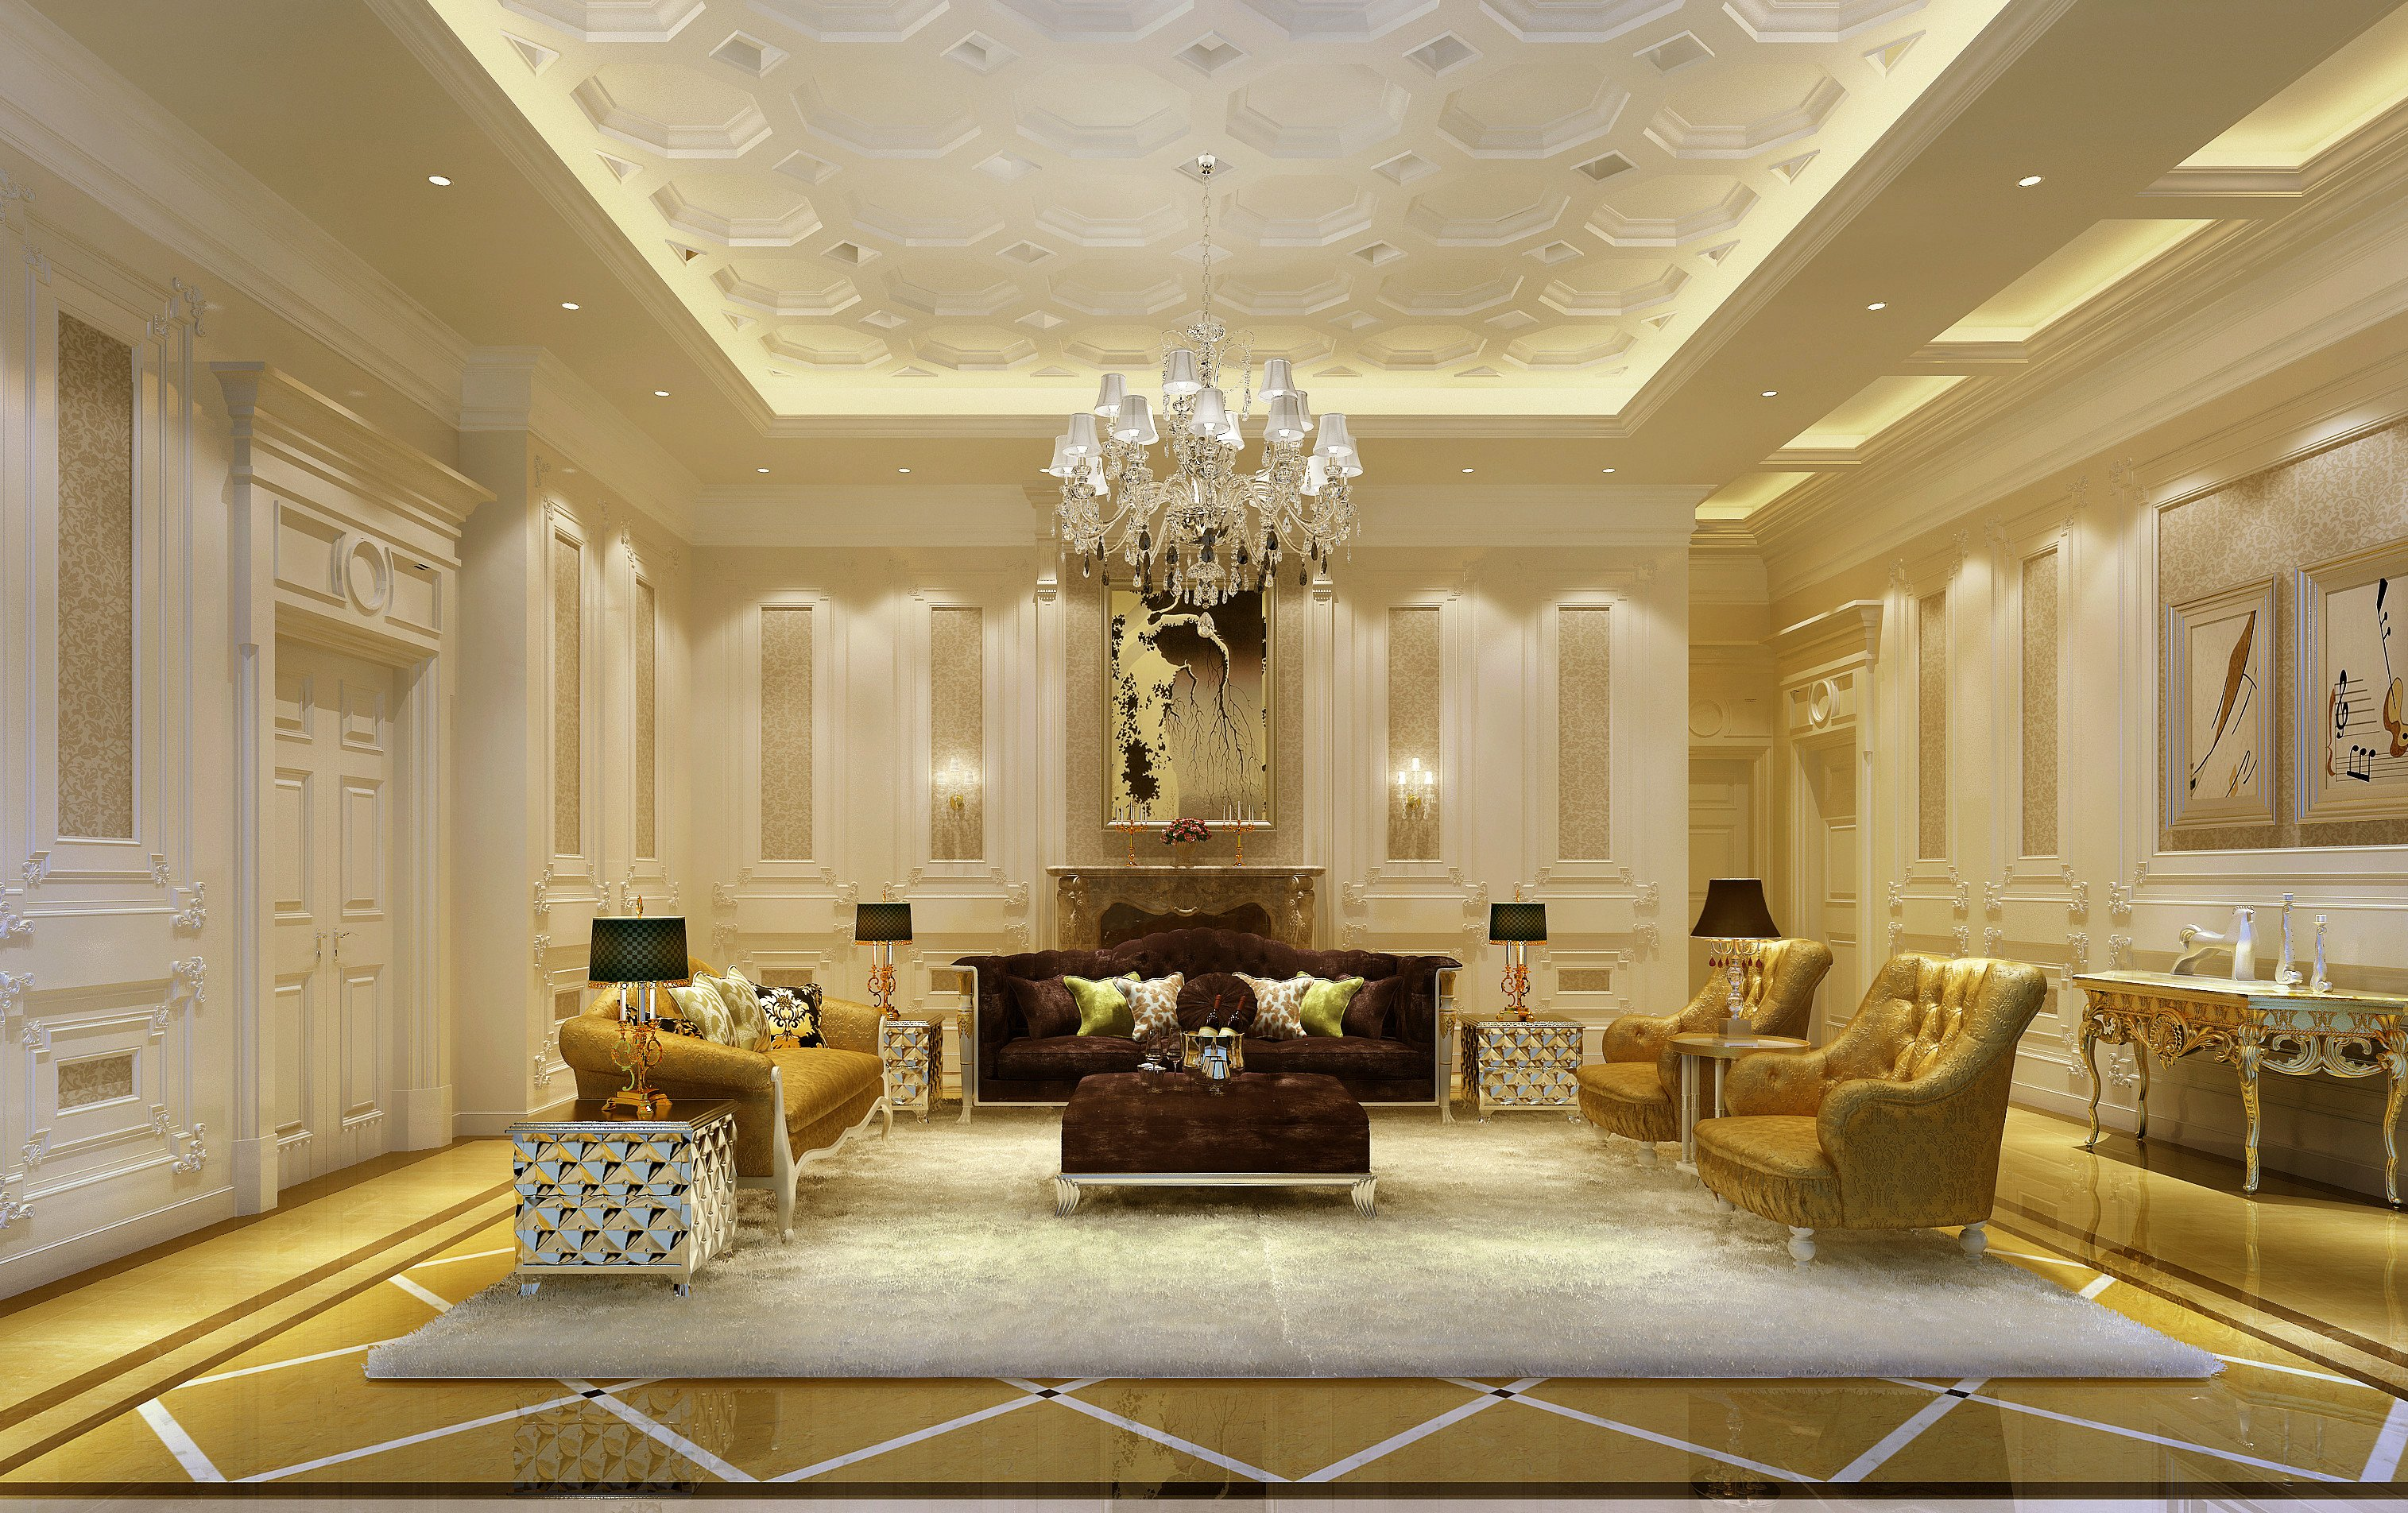 Expensive Modern Living Room Decorating Ideas 25 Great Design Of Luxury Living Room Decorating Ideas